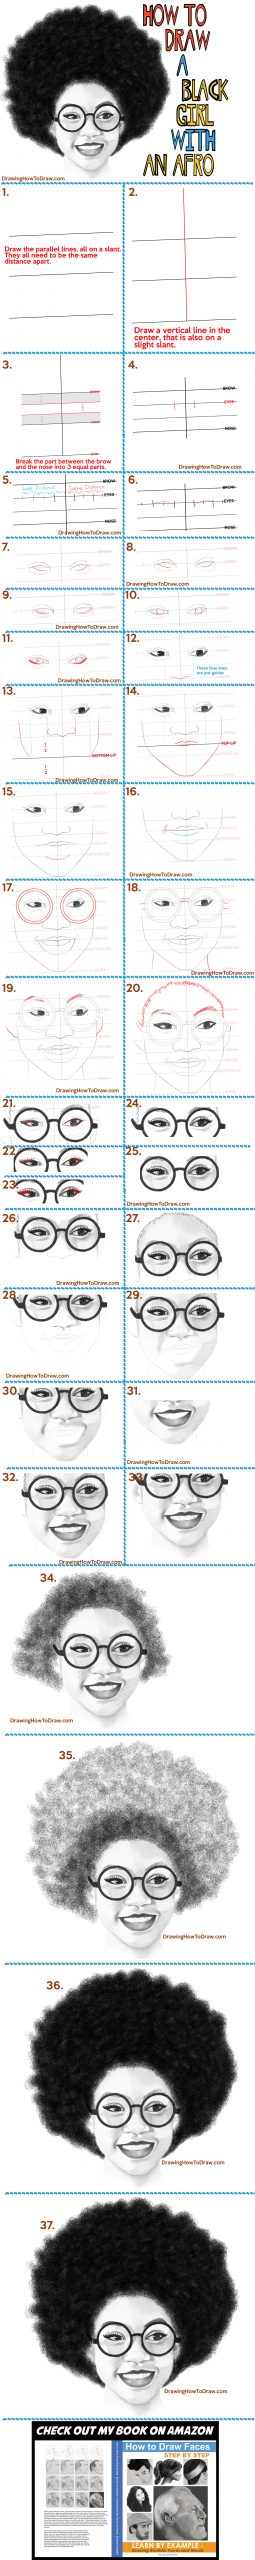 how to draw a black girl's face with glasses and an afro and a beautiful smile